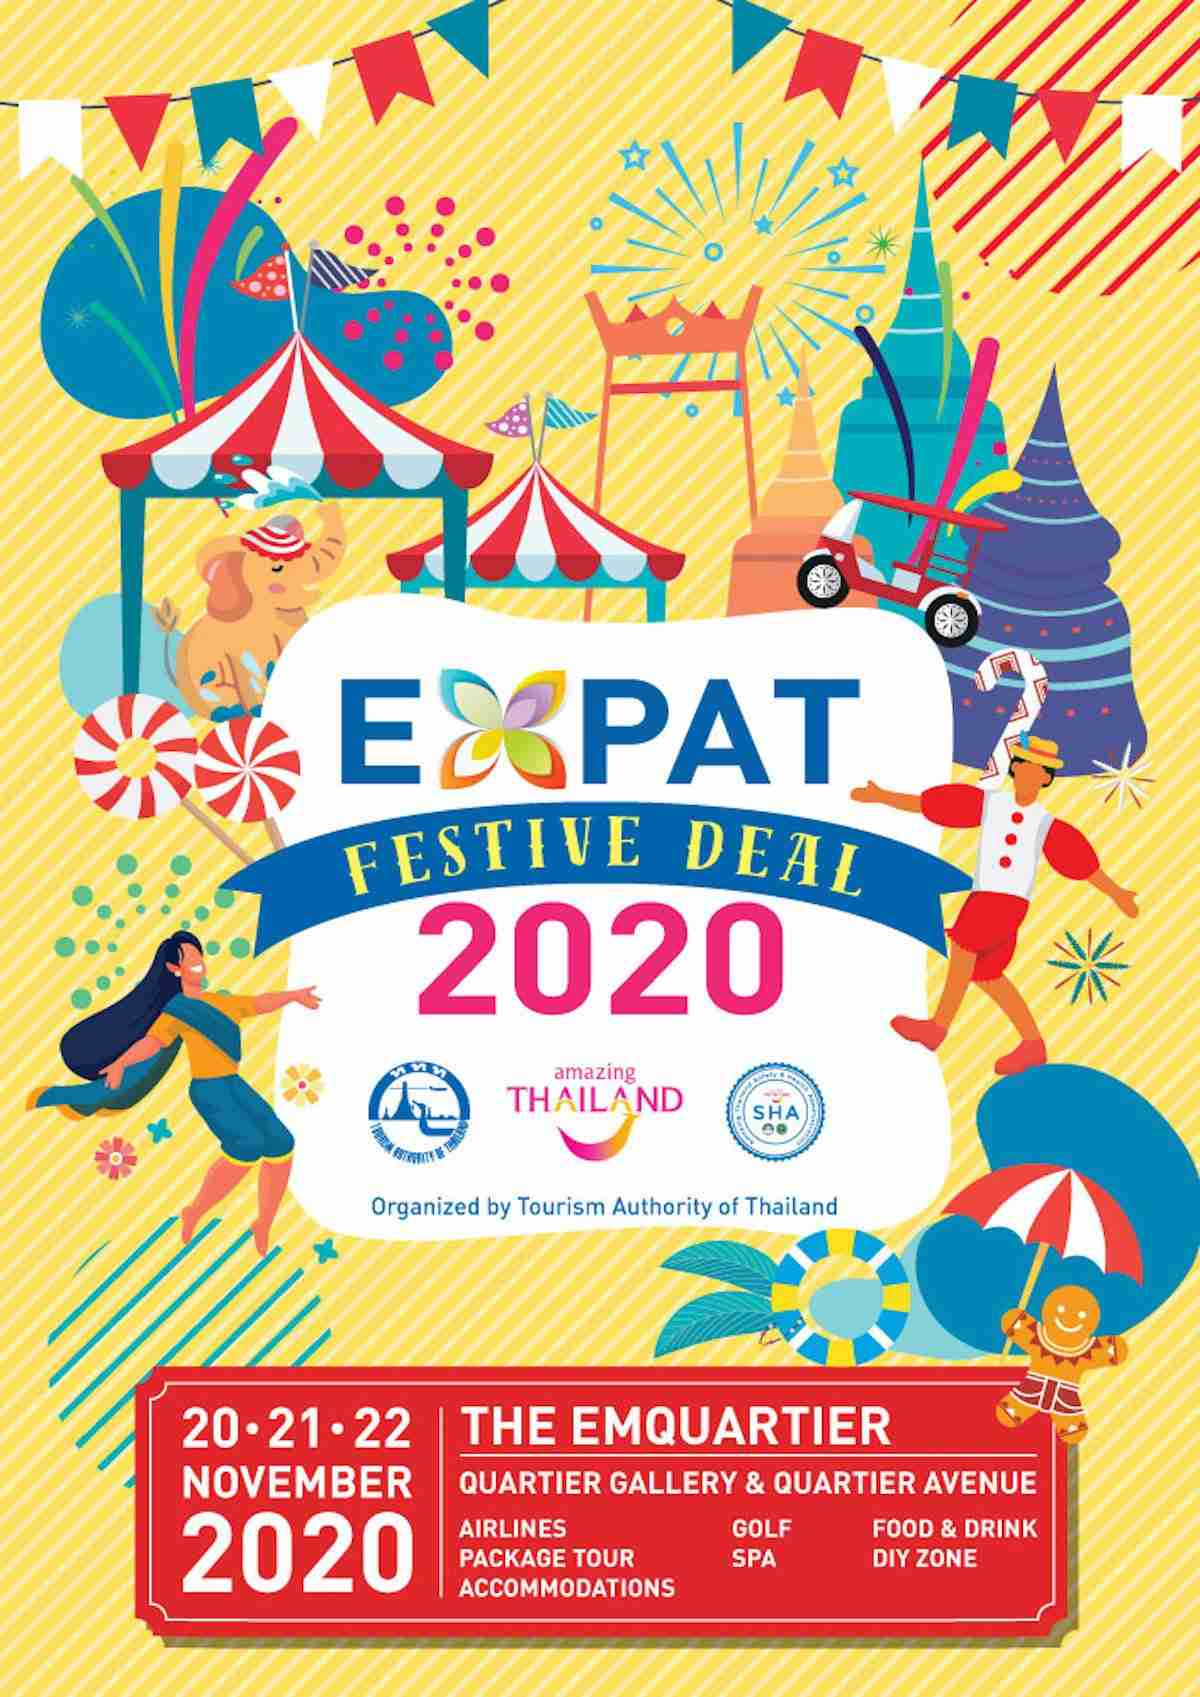 Expat Festive Deal 2020 Offers Travel, Holiday Promos for Foreigners Nov. 20-22